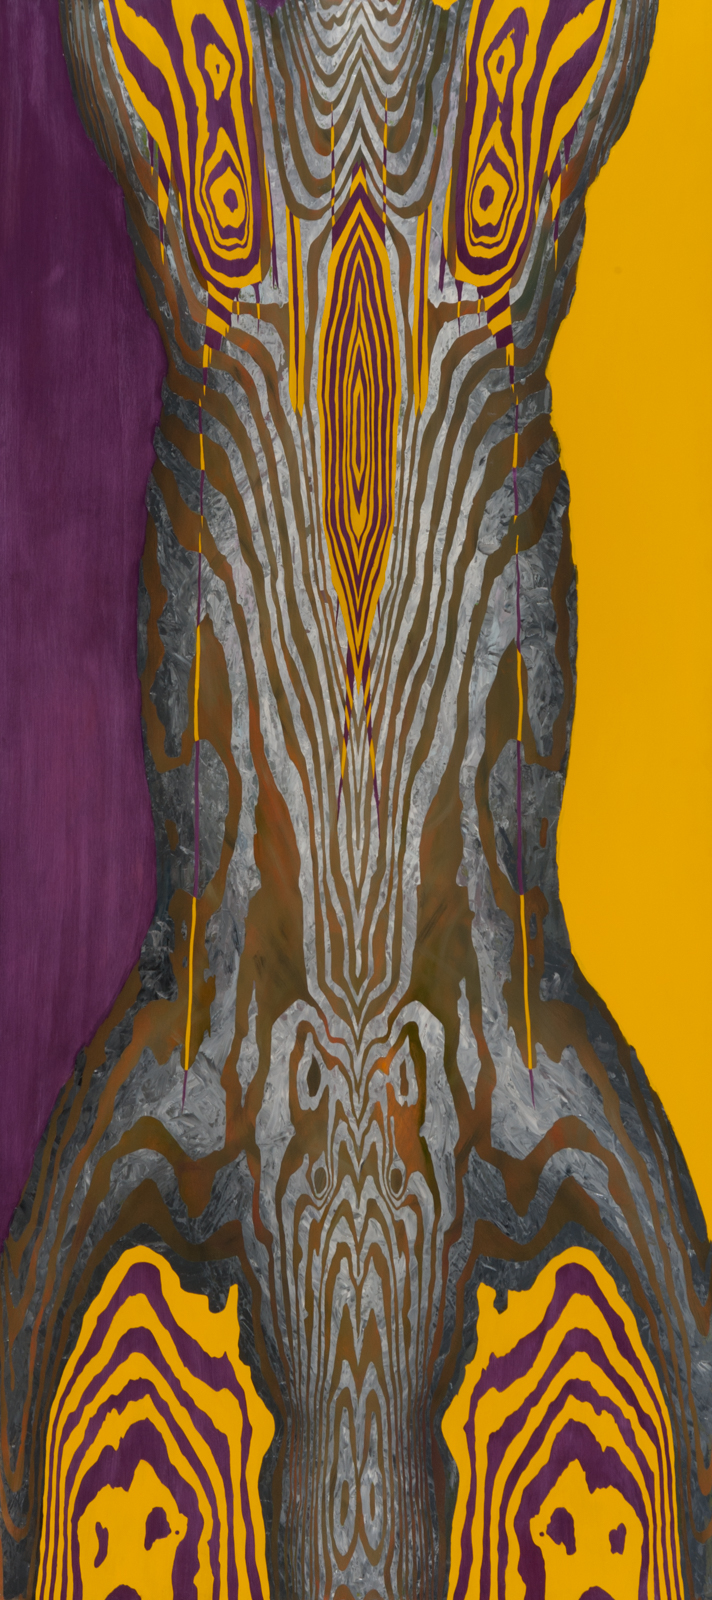 "Purple + Yellow. 1999. Oil on wood. 80"" x 36""."